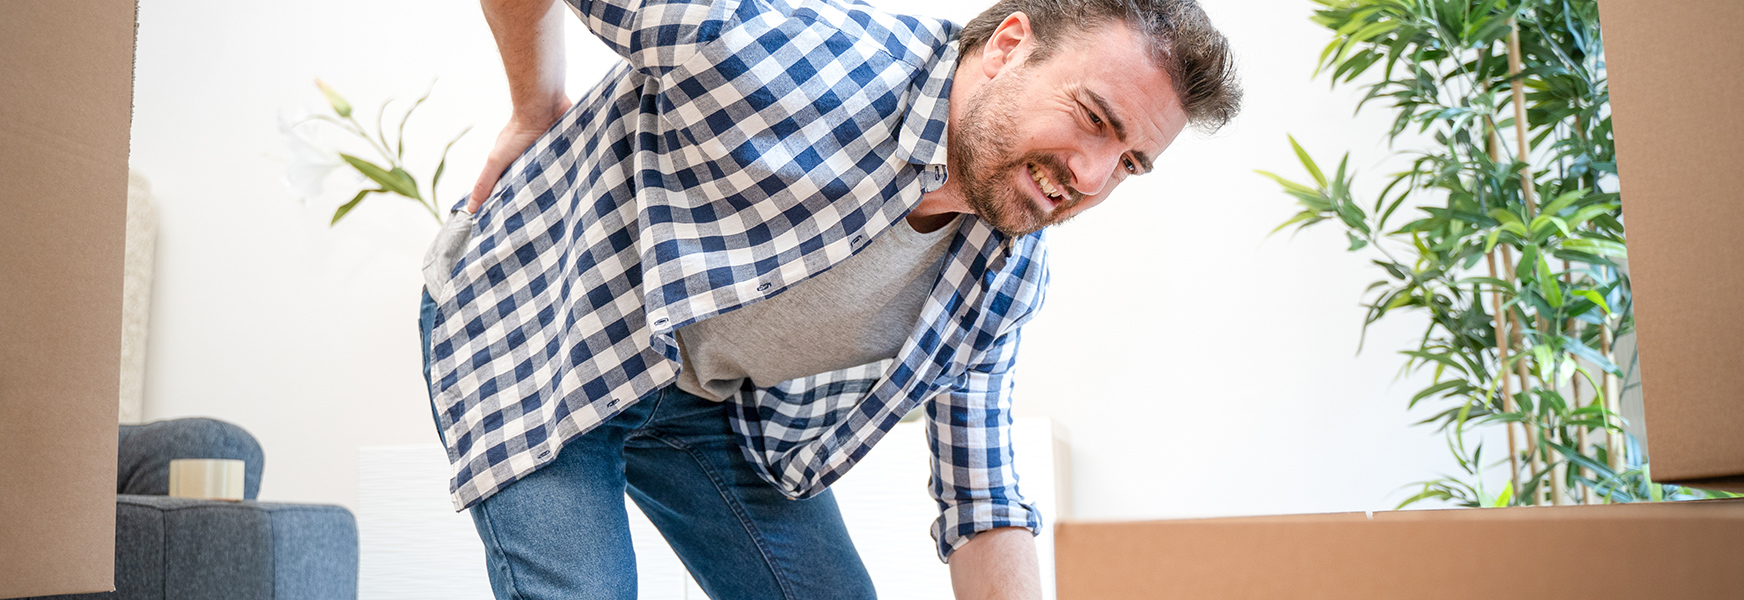 Man with sore back from improper lifting technique